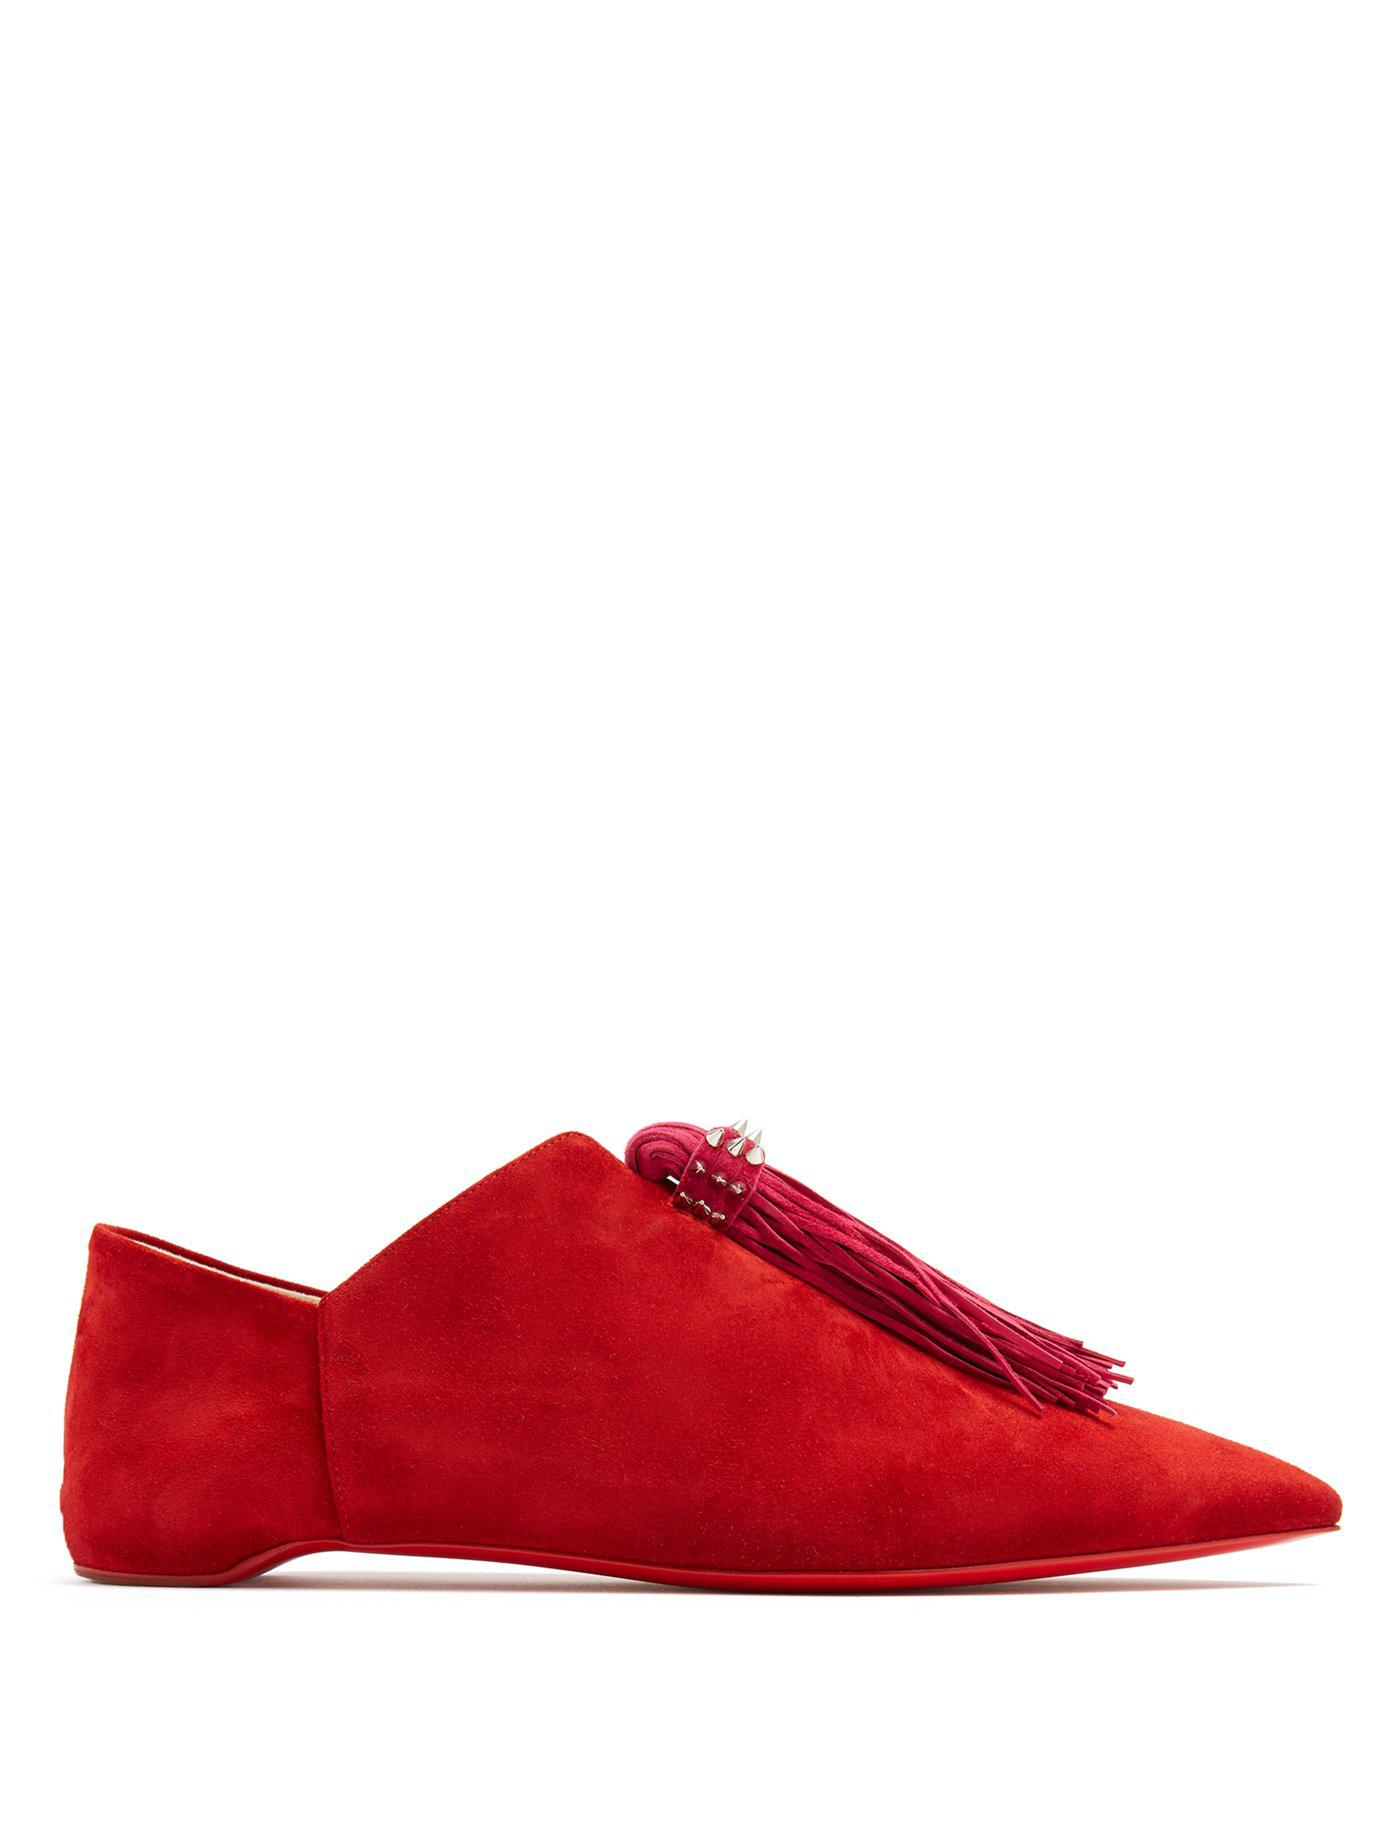 80a27e18d7fb Lyst - Christian Louboutin Medinana Fringed Suede Slippers in Red ...